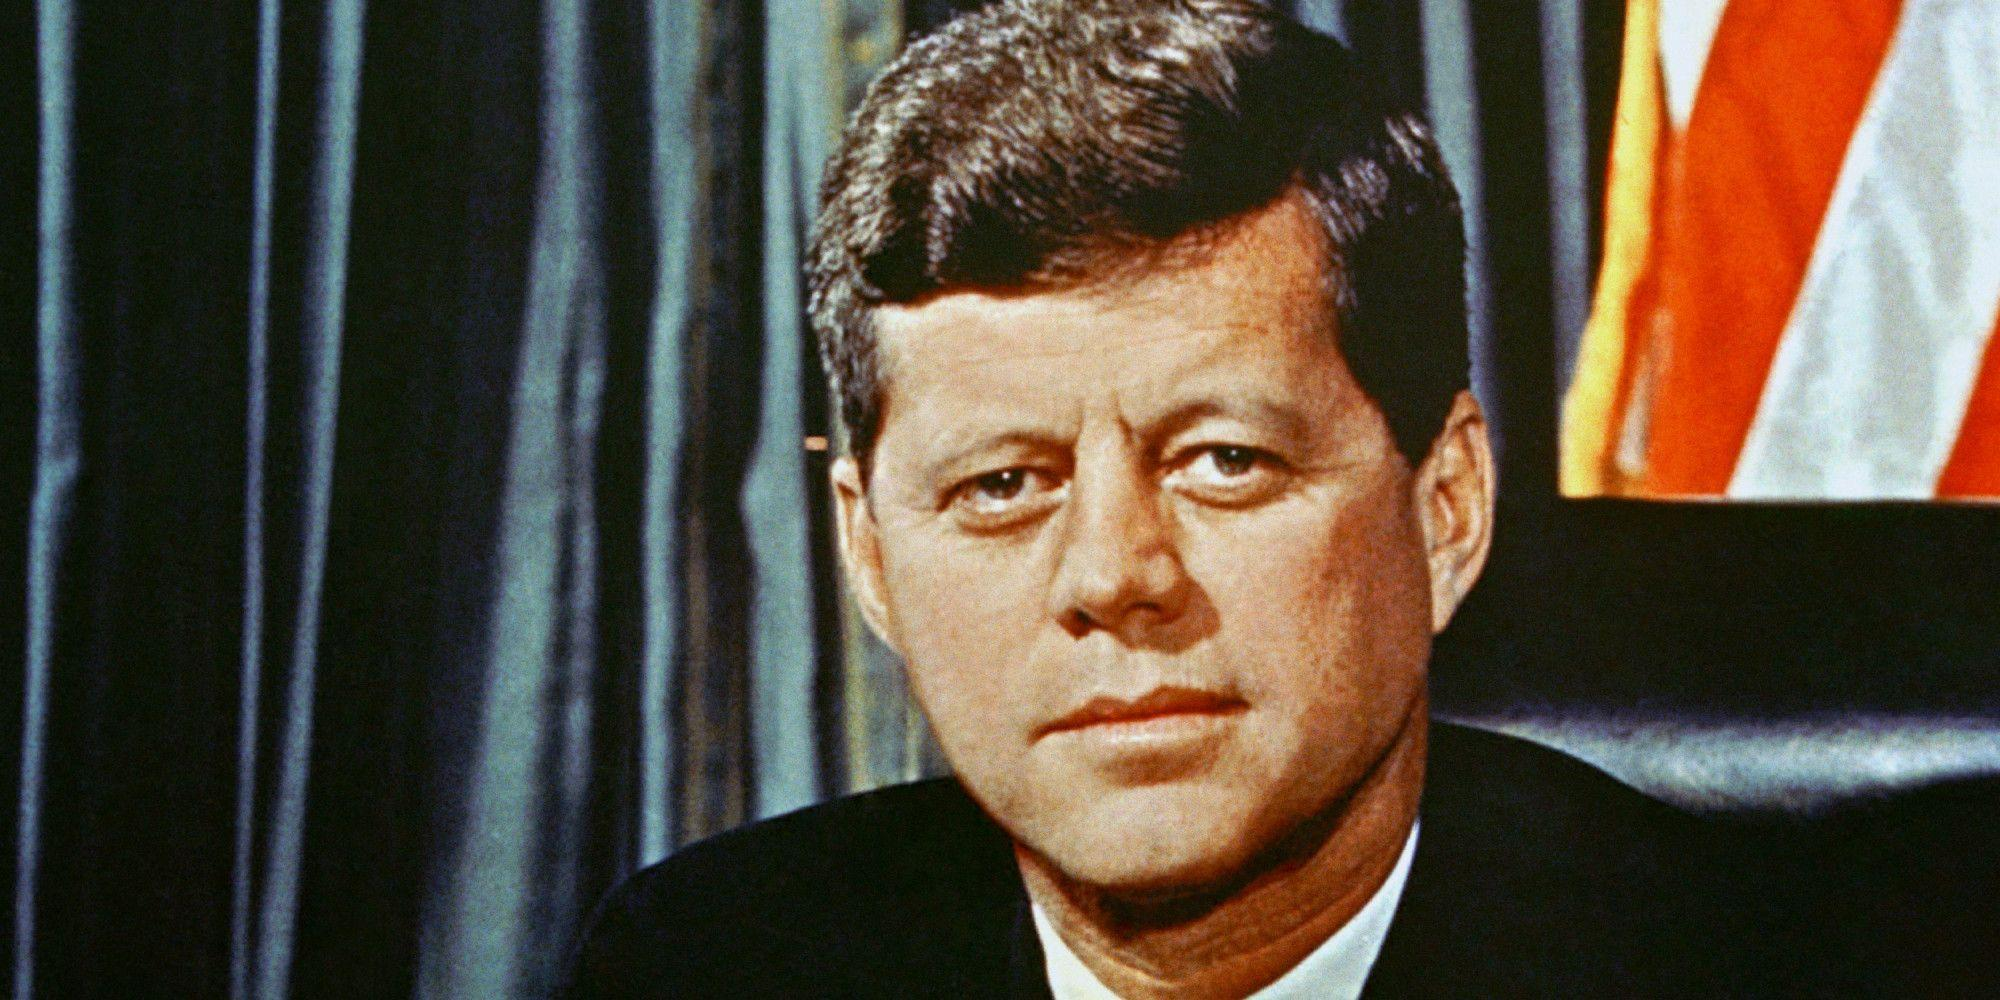 John F. Kennedy Wallpapers